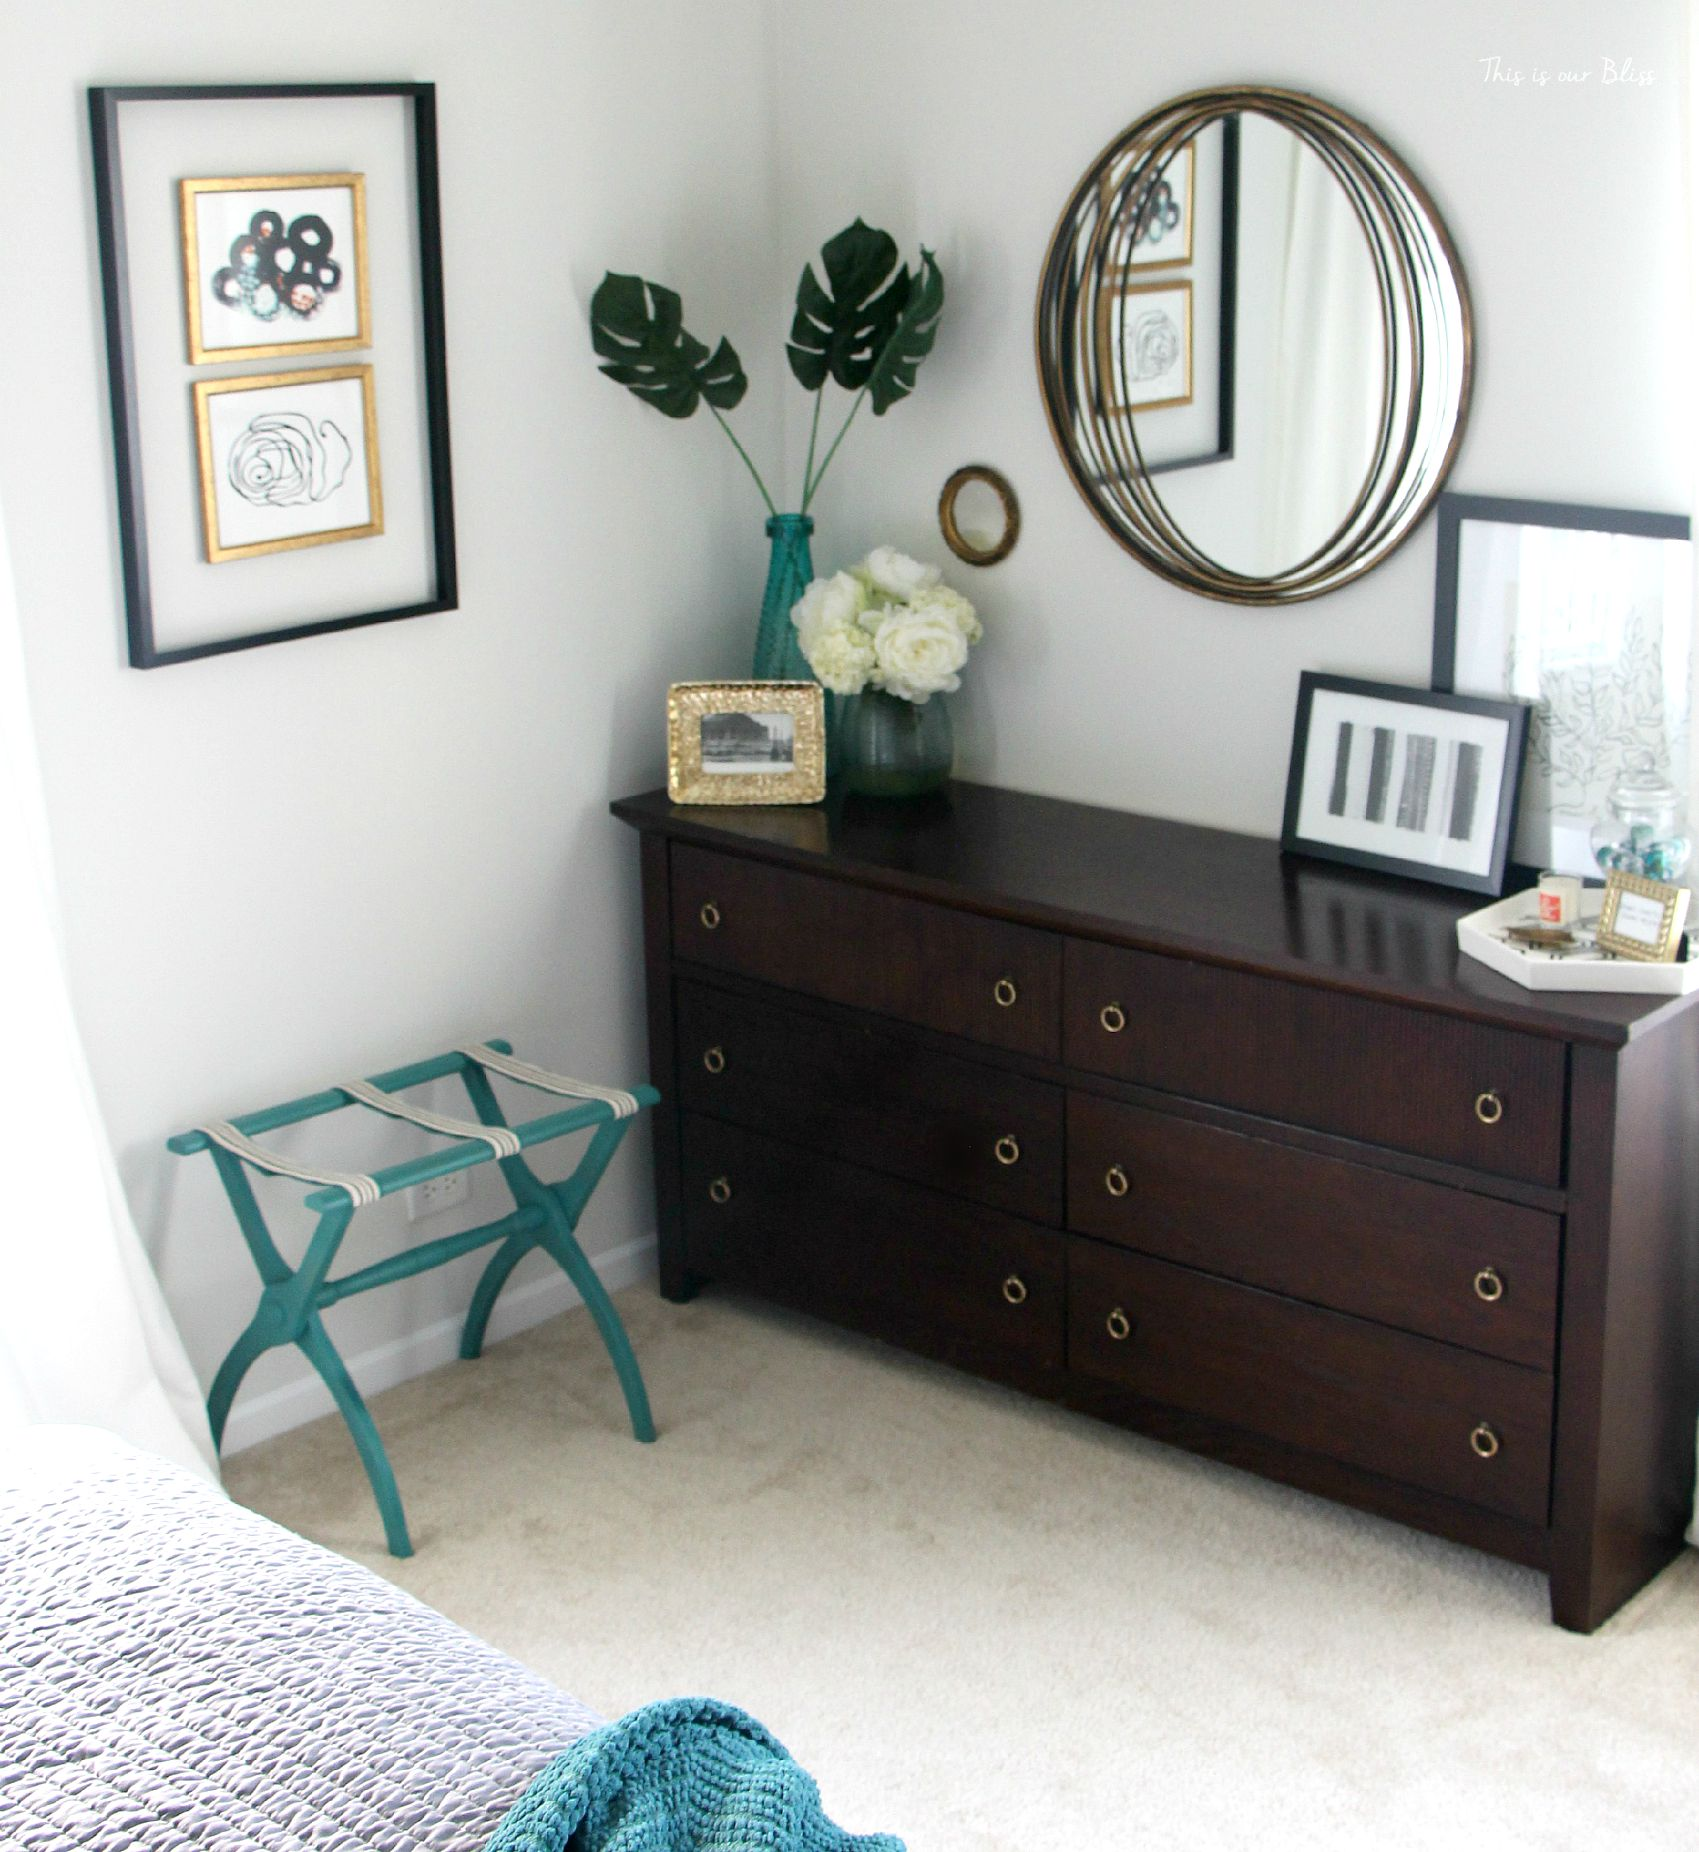 Placed It In The Room And It Was Ready For Guests  Luggage Rack Makeover  Guestroom. Images of Luggage Racks For Guest Rooms   All Can Download ALL